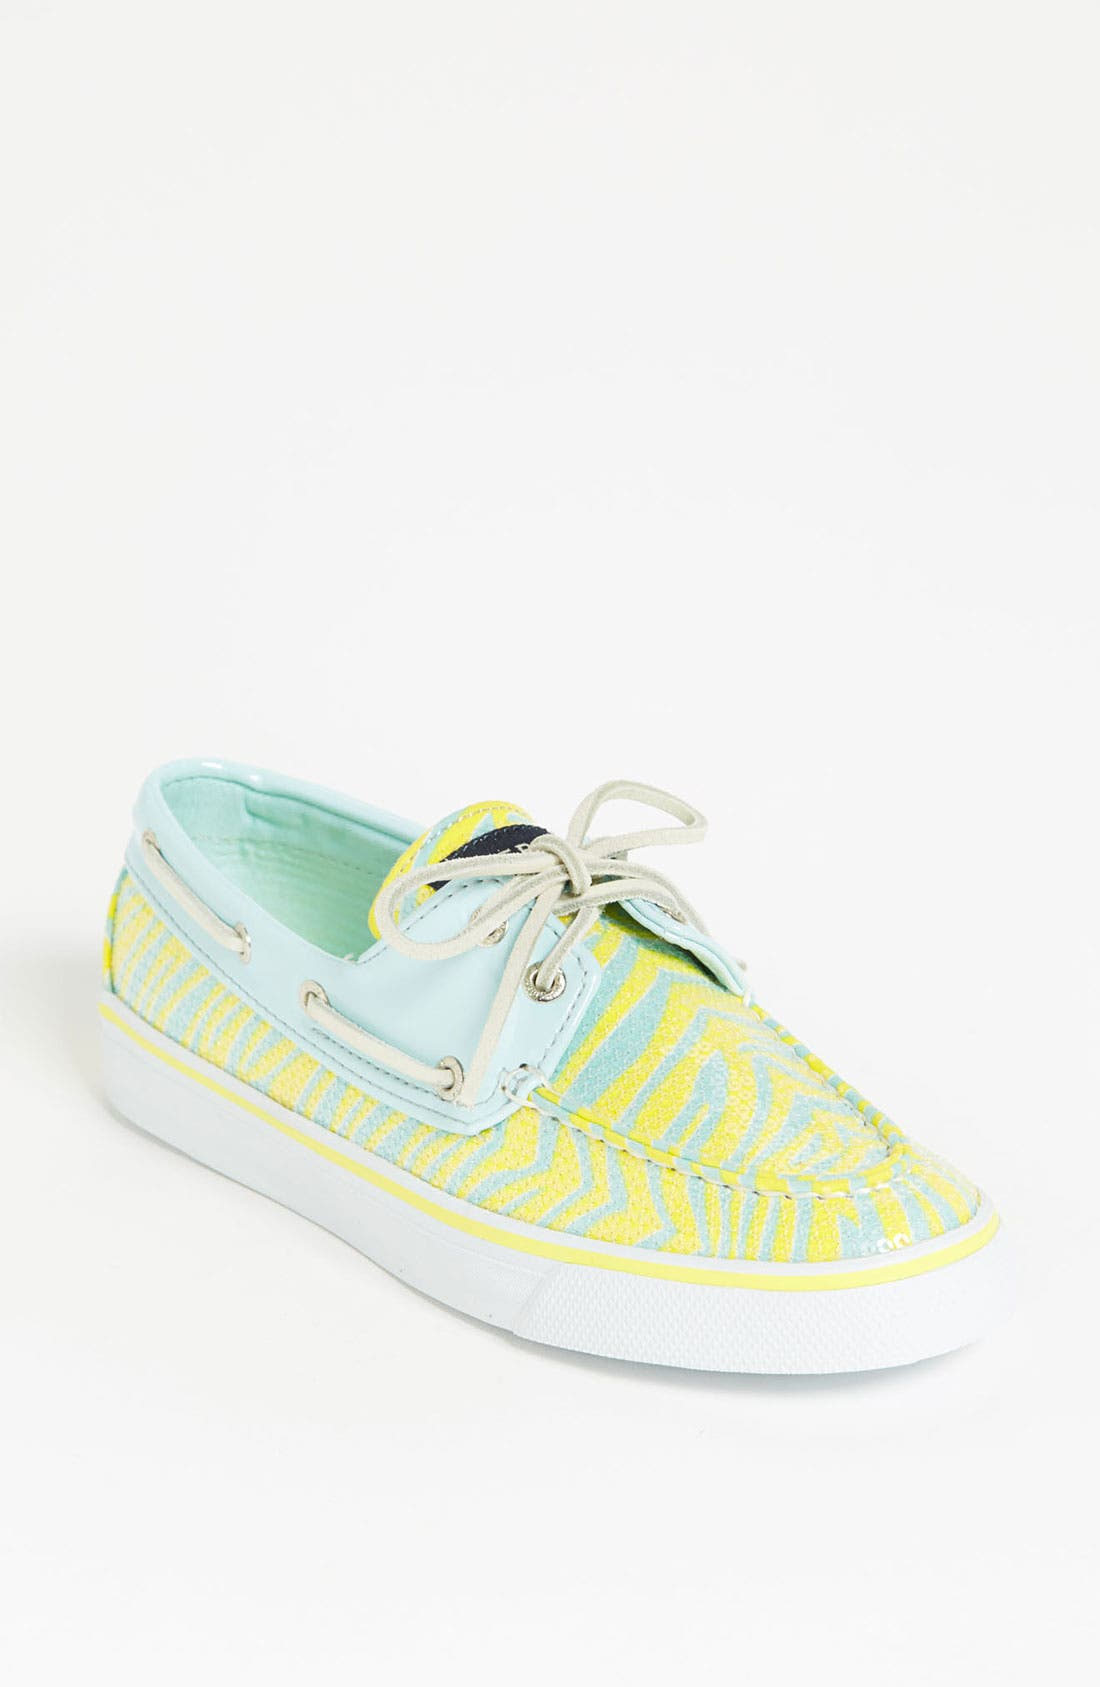 Alternate Image 1 Selected - Sperry 'Bahama' Sneaker (Women)